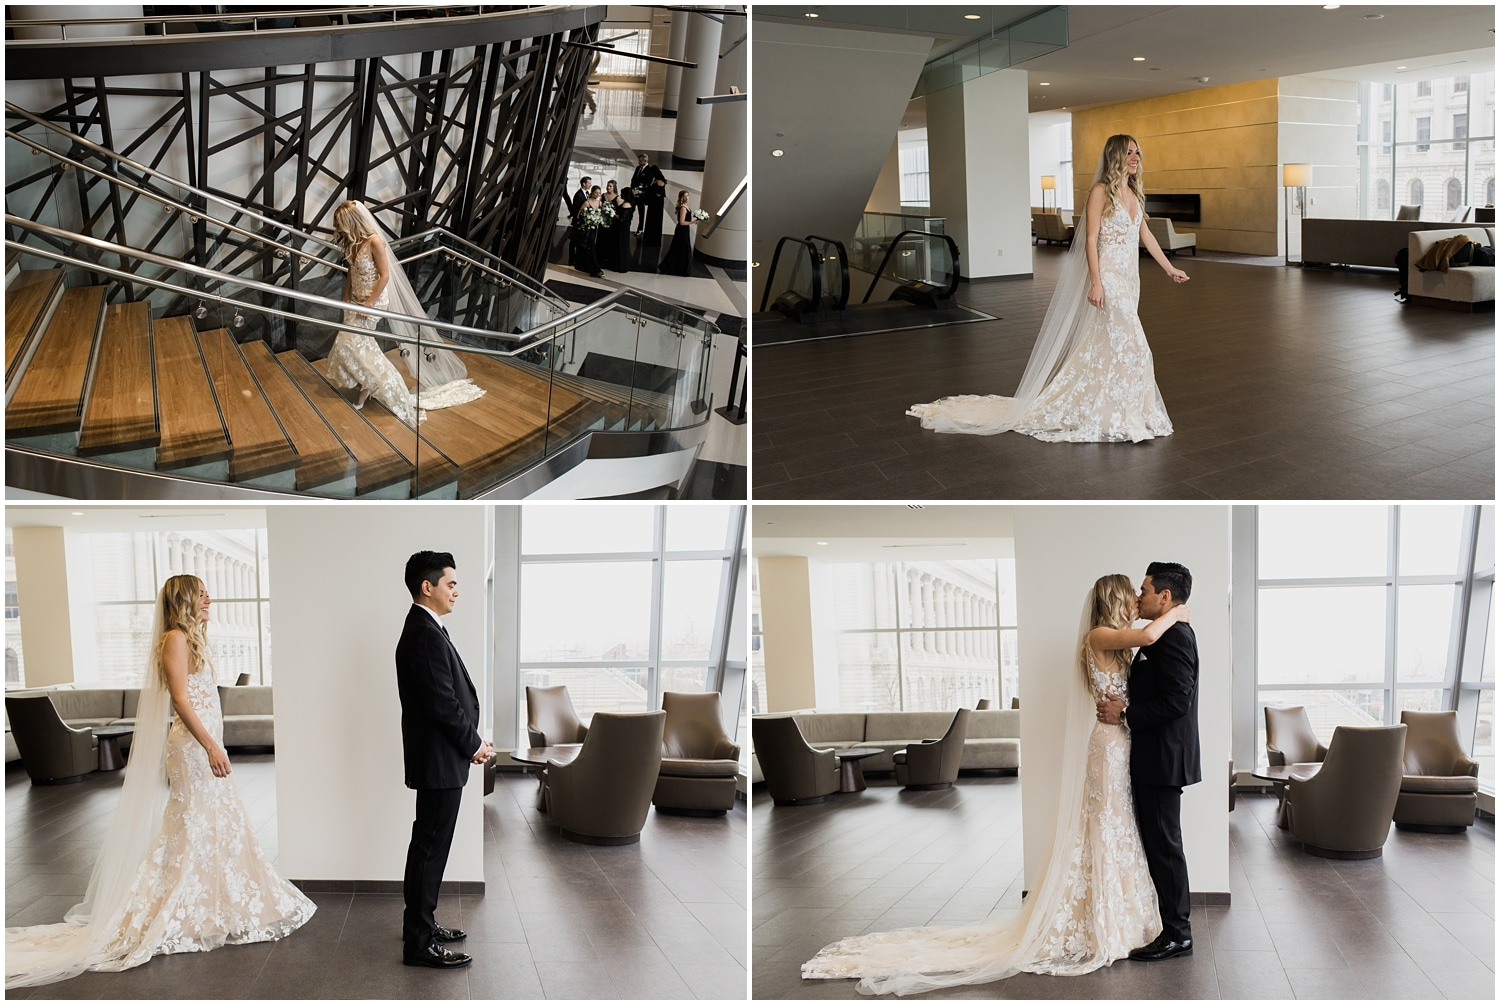 adam lowe photography, wedding, style, love, bride and groom, Cleveland wedding, the black tux, bhldn, perfectly planned by val, made with love bridal, wedding dress, hilton, windows on the river,